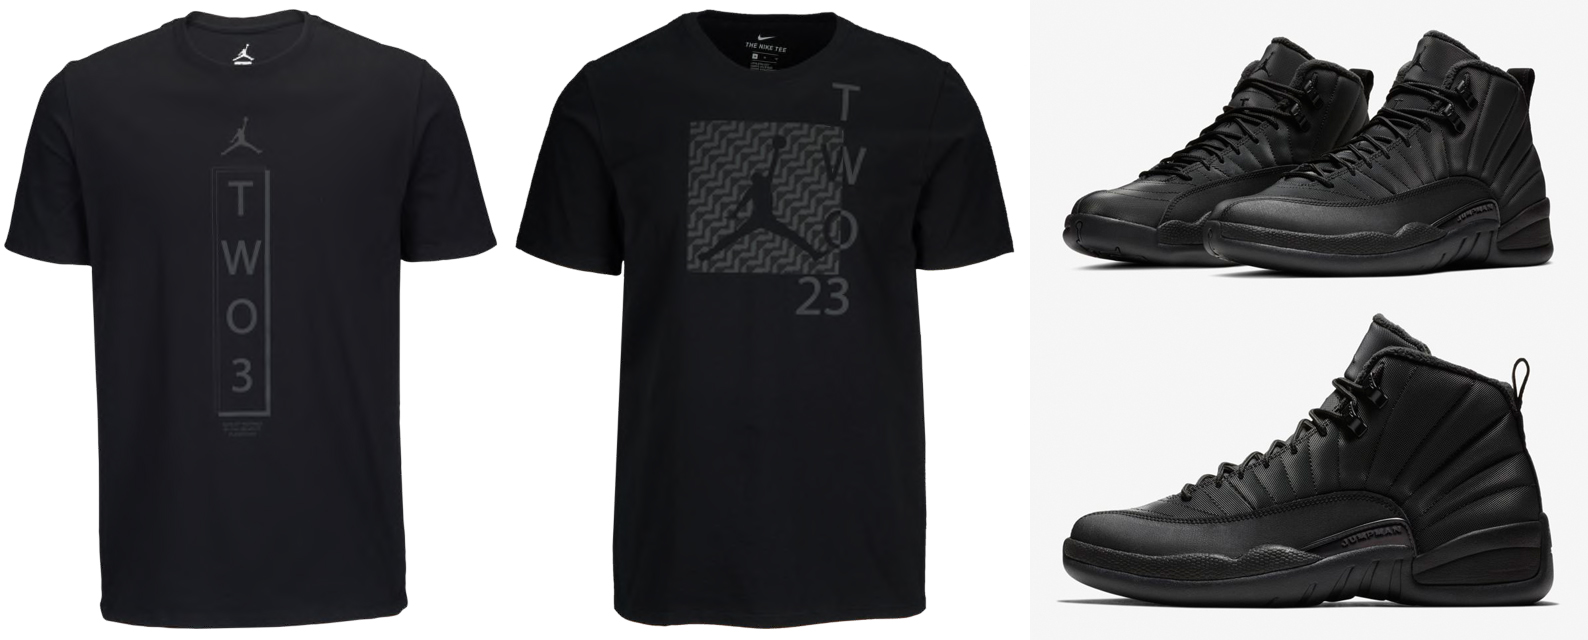 promo code be6a6 1fb0d Air Jordan 12 Winterized Sneaker Tee Shirts | SneakerFits.com